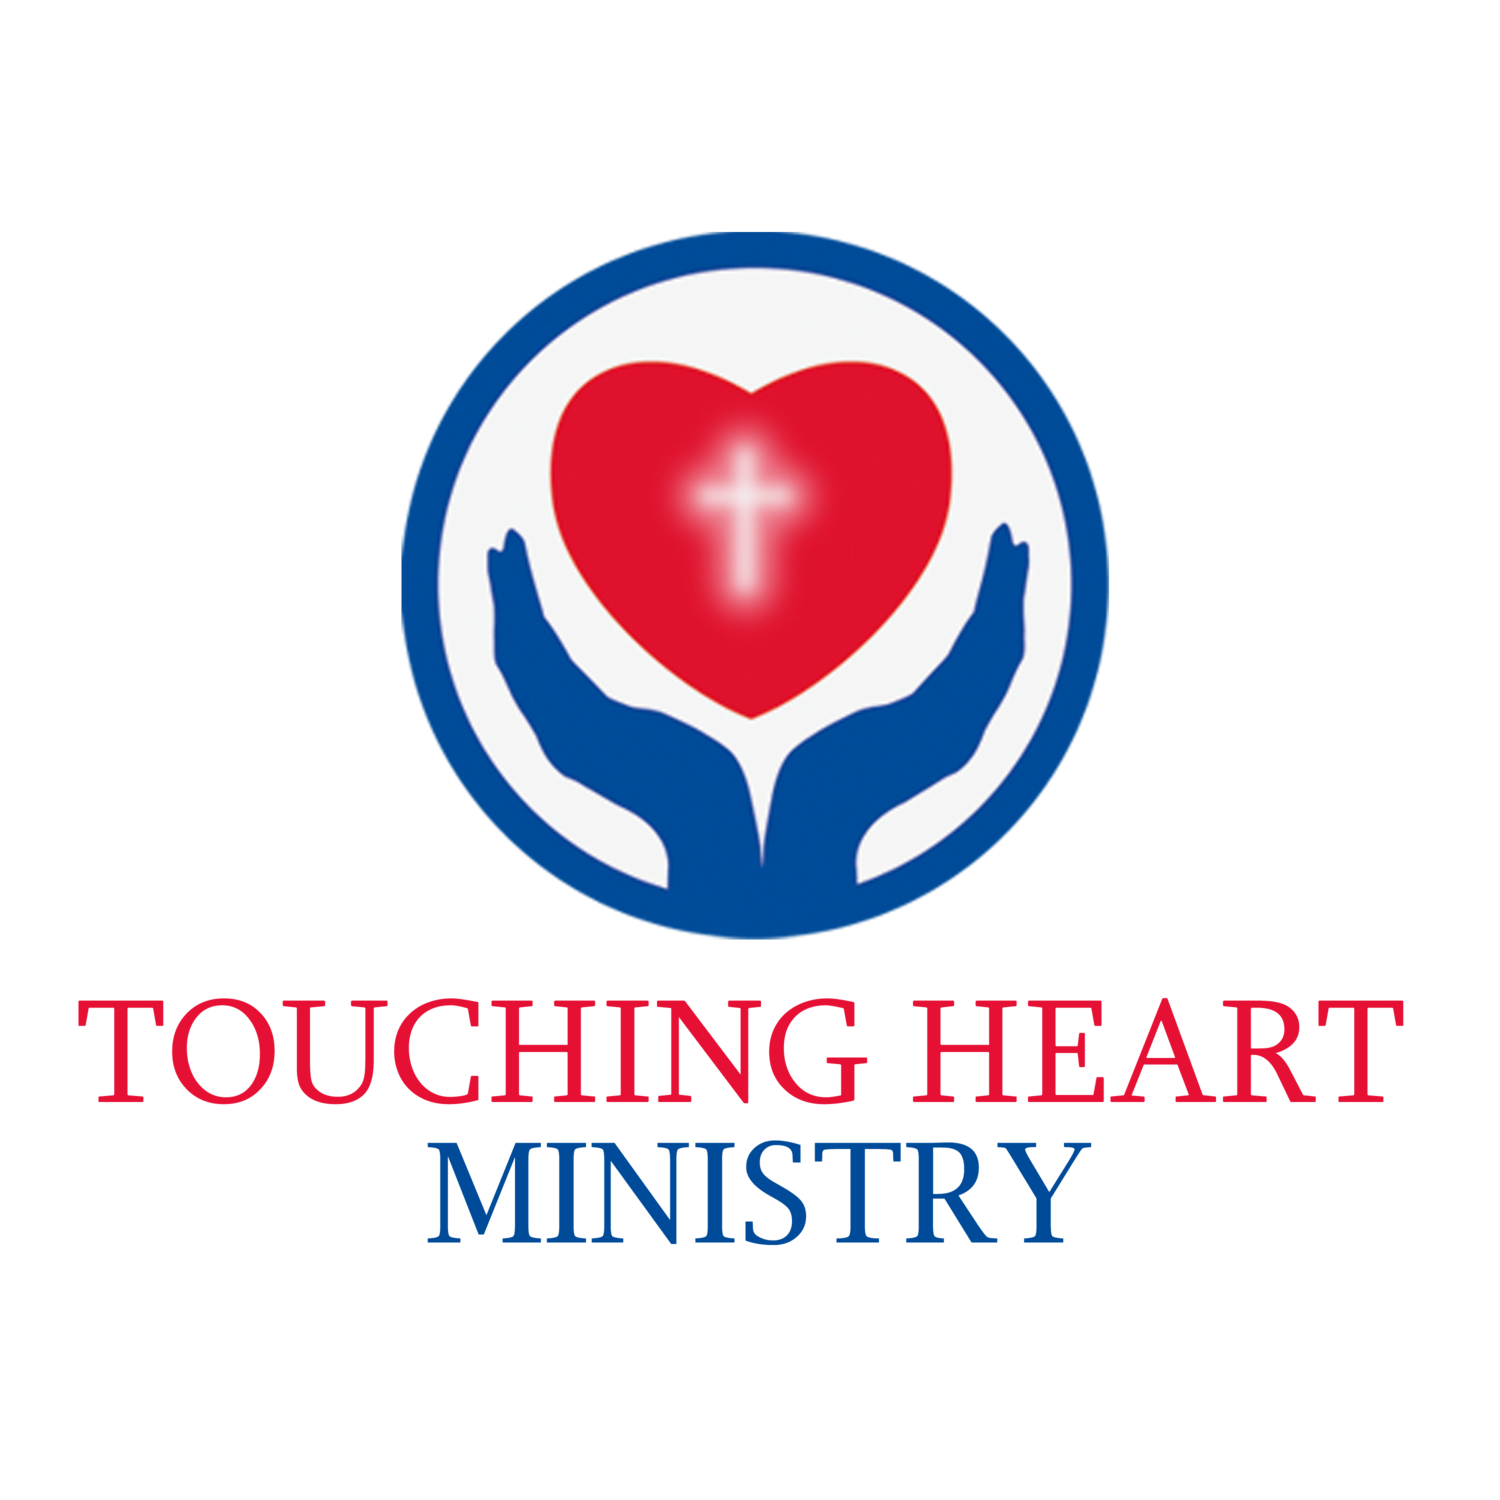 Touching Heart Ministry